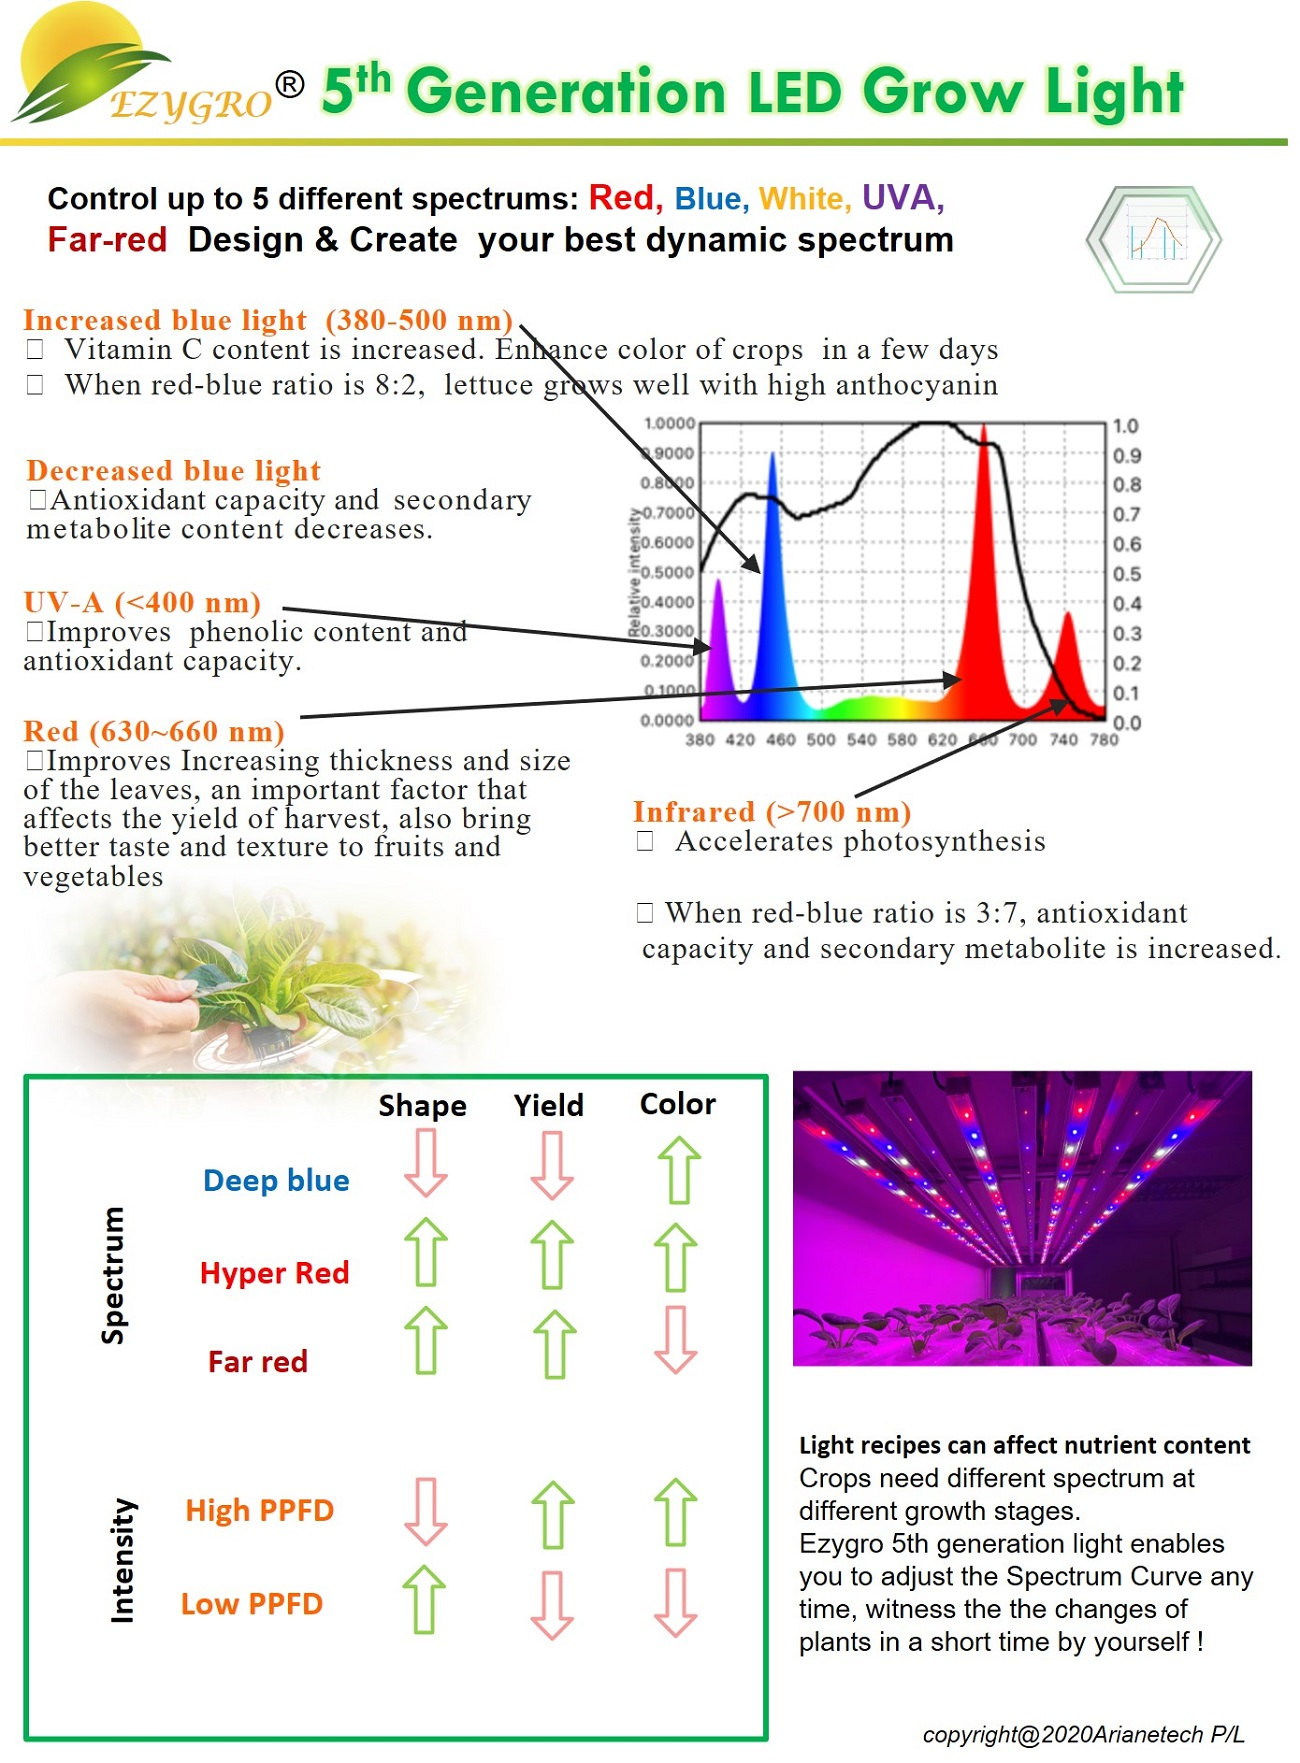 5 generation ezygro led grow light bar for crops in vertical farming 9